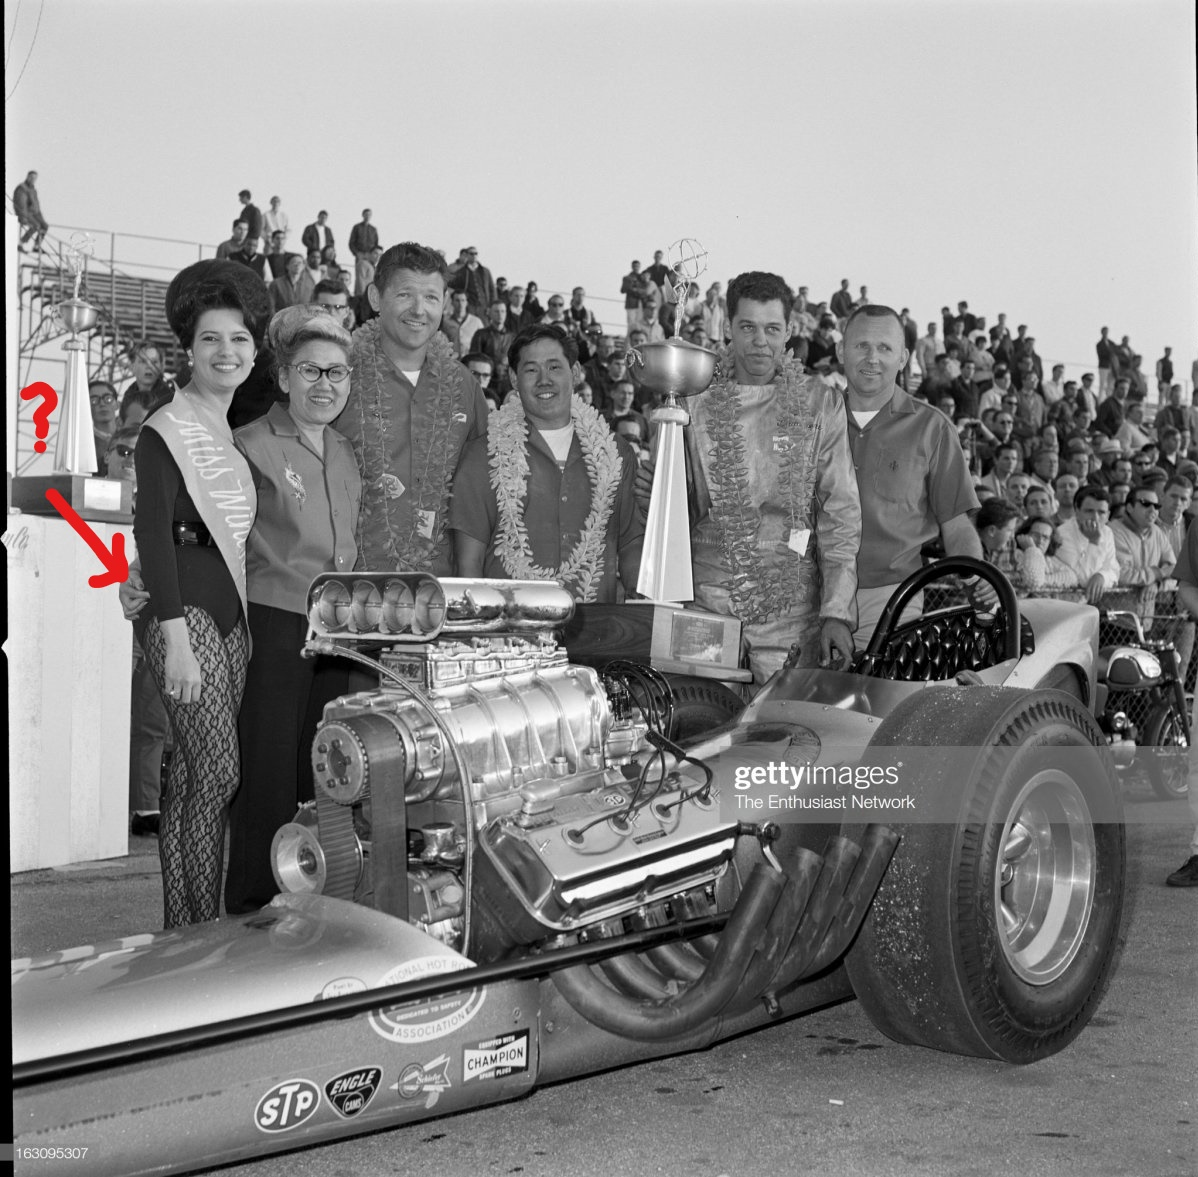 12 1965 NHRA Winternationals Drag R_LI.jpg